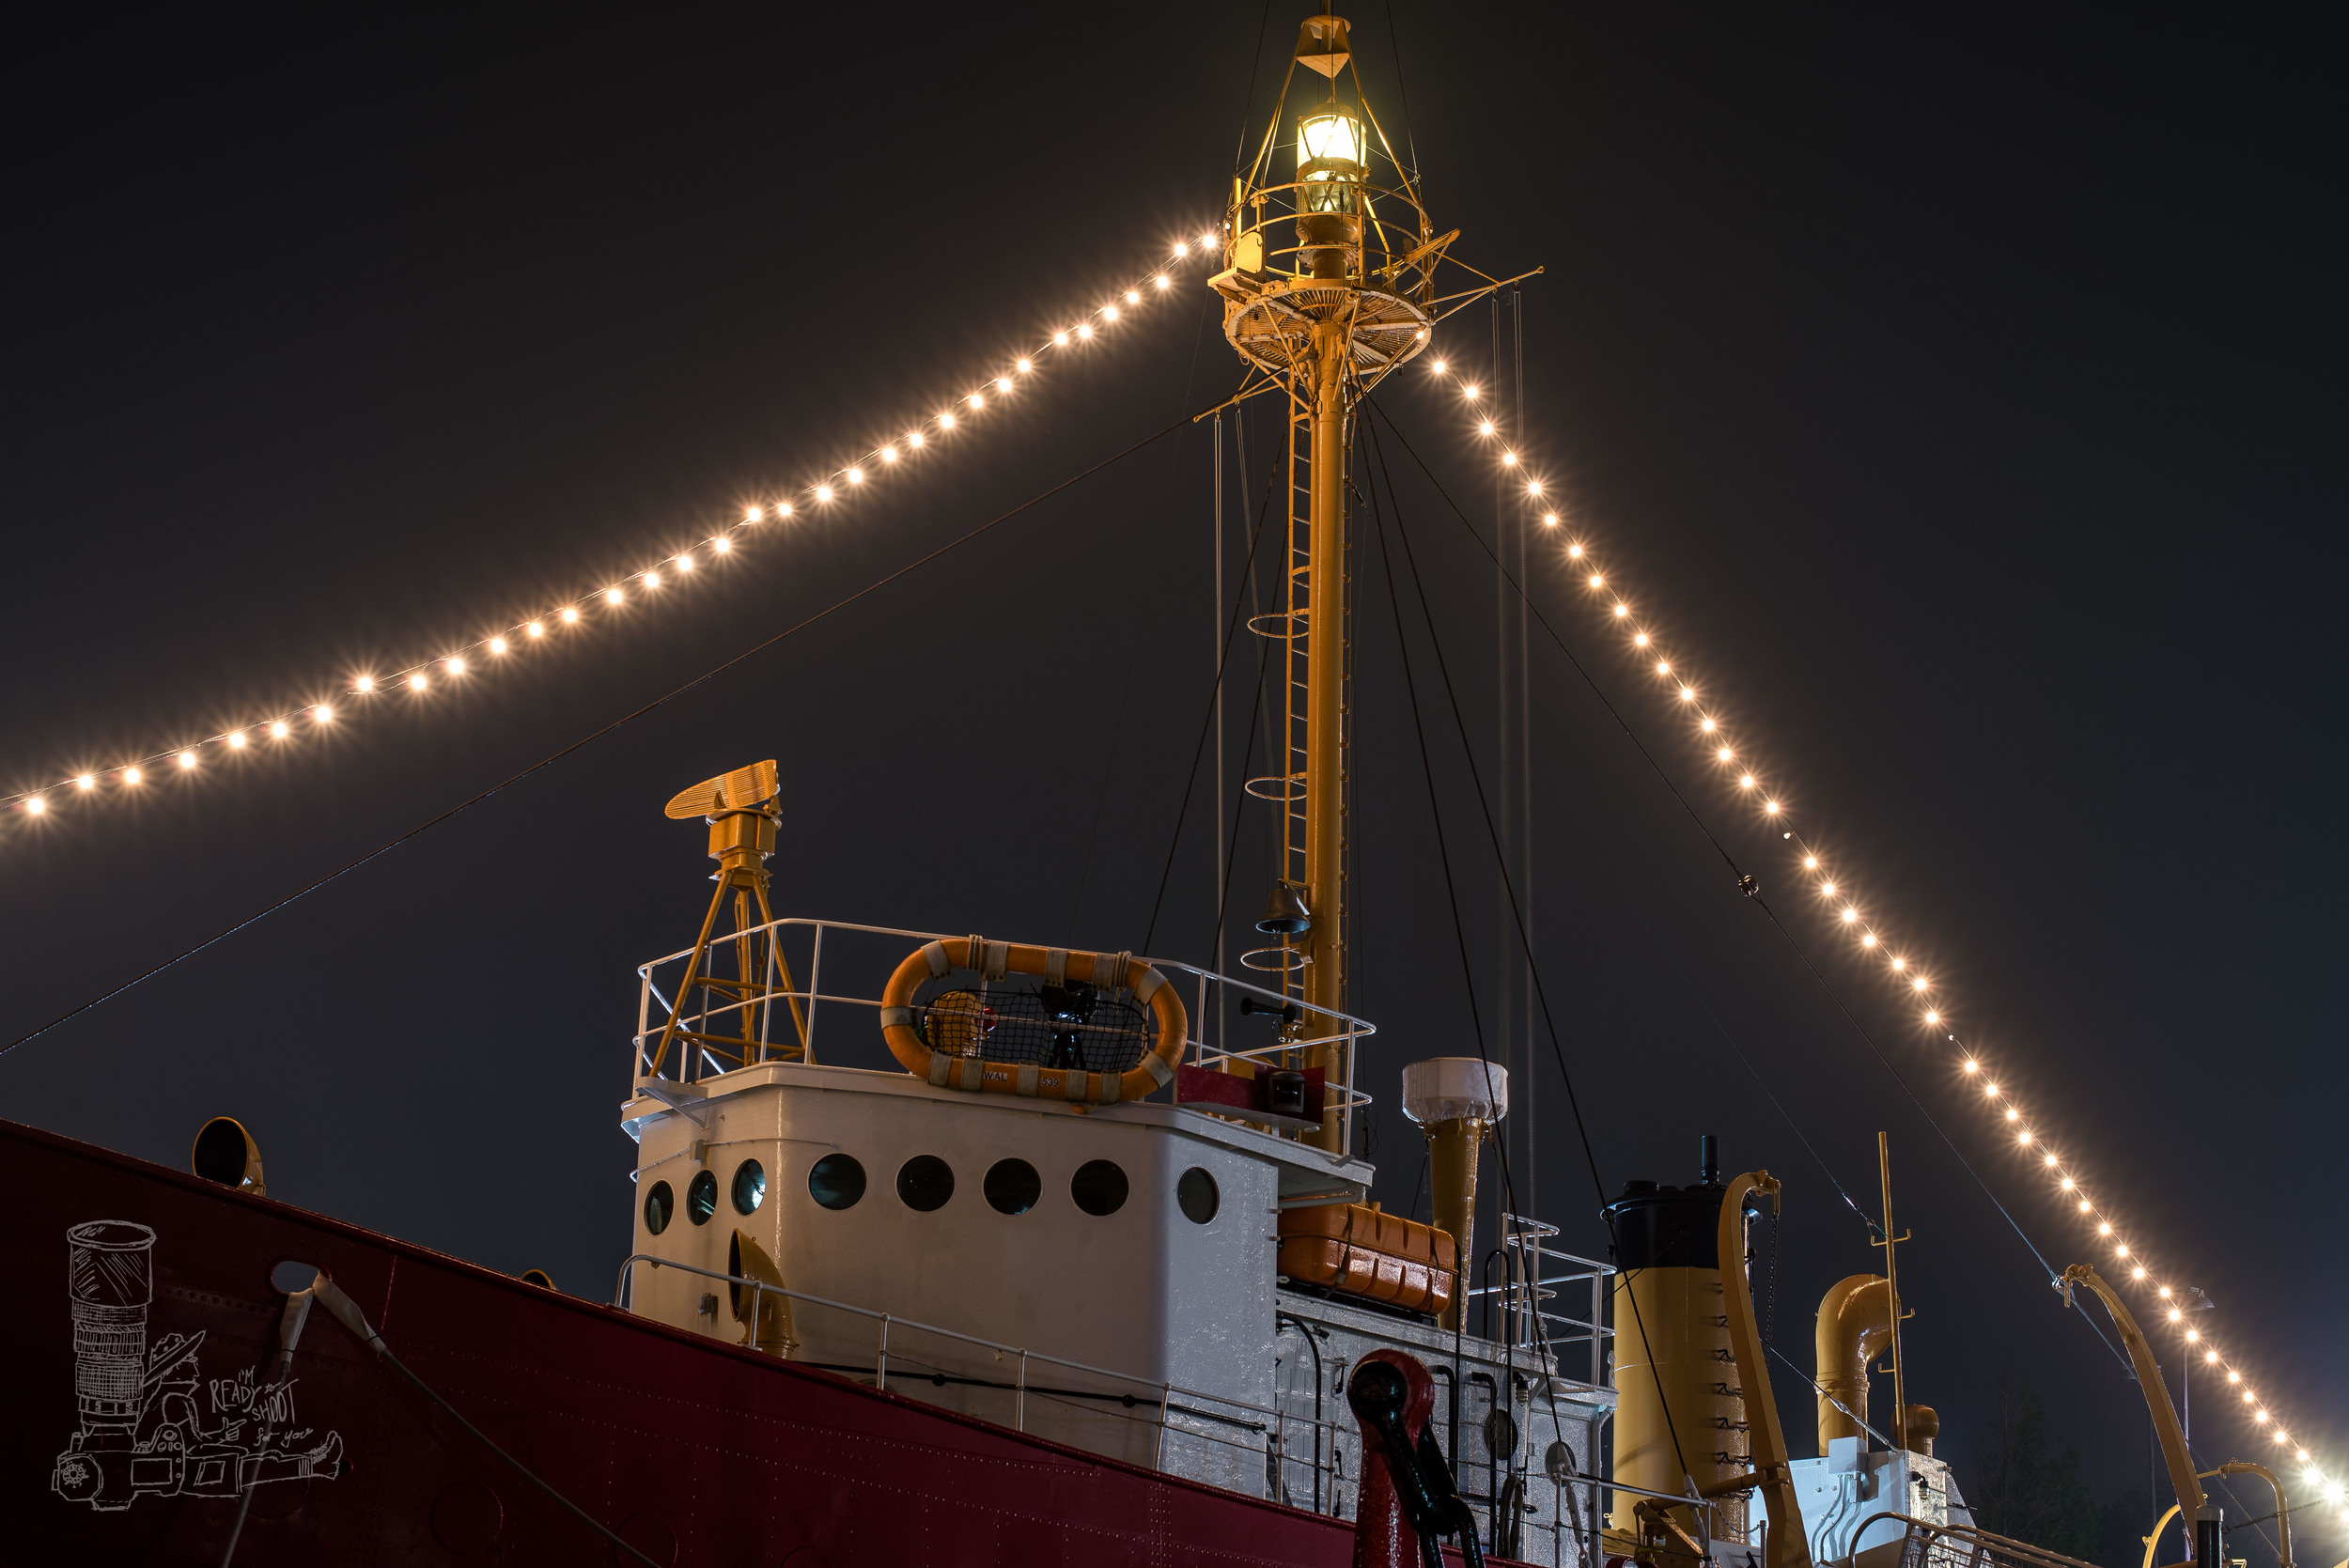 Lightship in the Fog